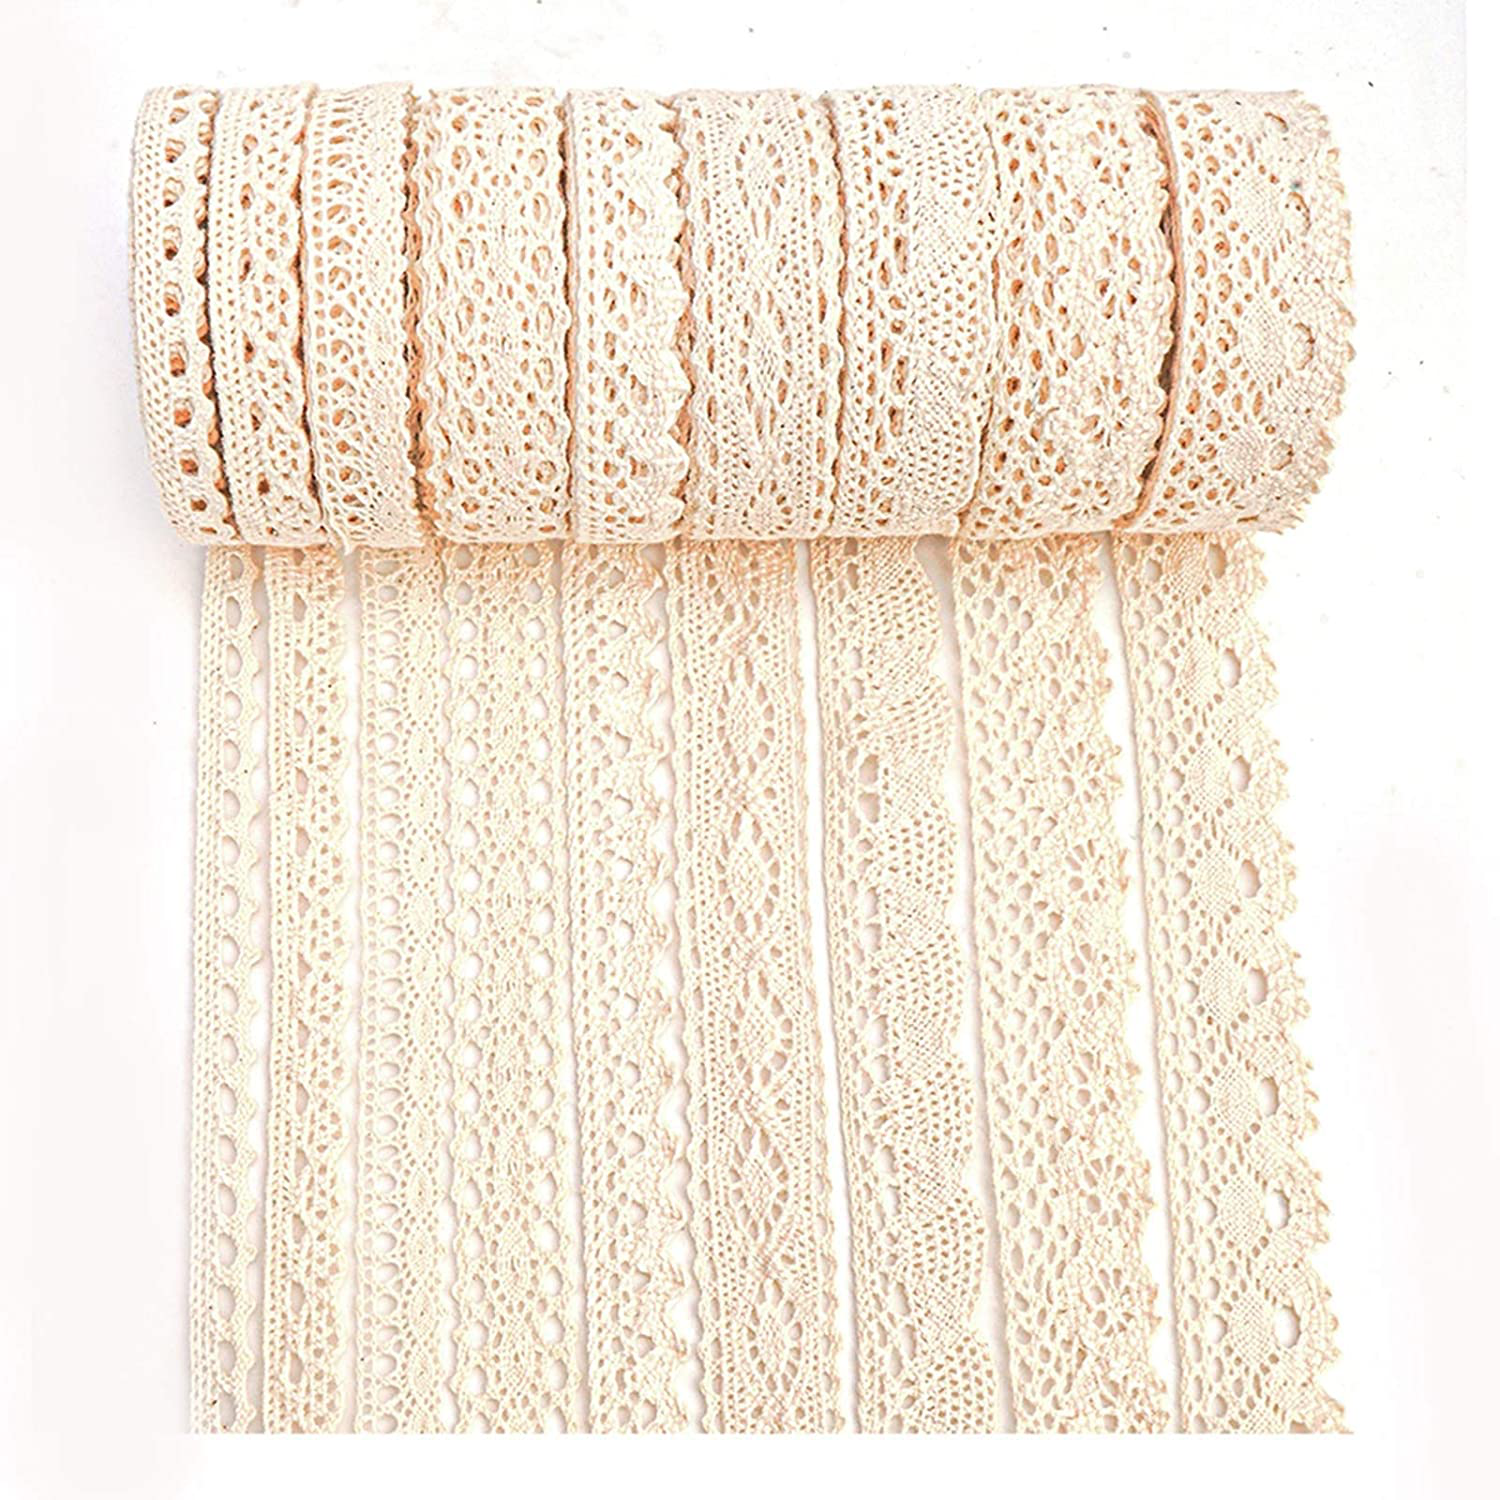 Photo of IDONGCAI Lace Ribbon for Crafts Lace Sewing Trims-Ribbon Lace for Bridal Wedding Decoration Valentine's Day Package DIY Sewing Craft Supply Mix 40 Yards (5 Yard Each) – Beige